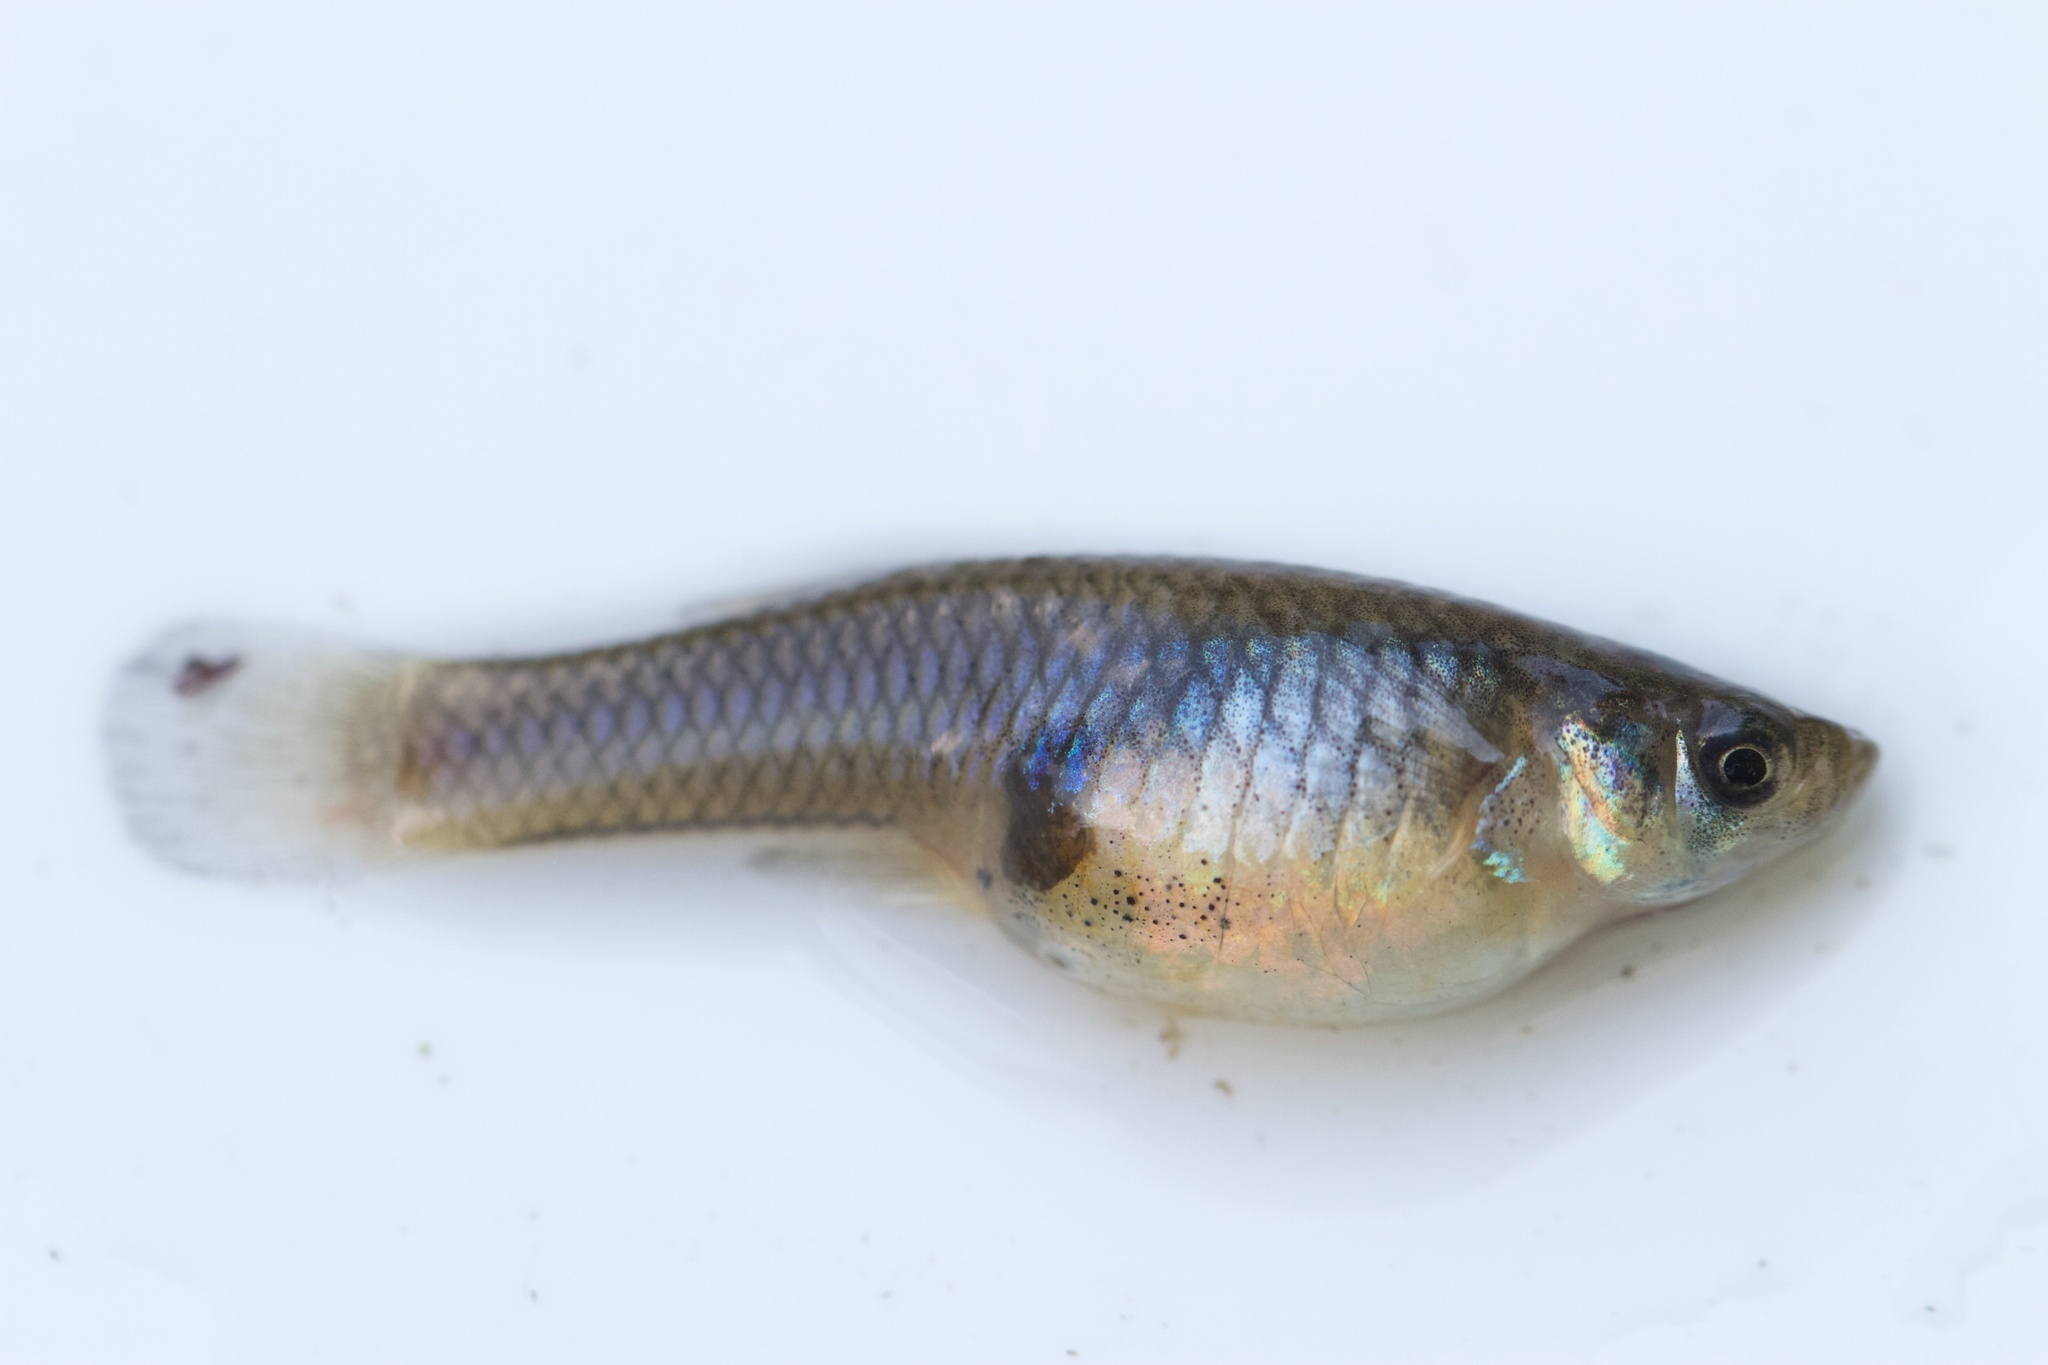 Image of Eastern Mosquitofish